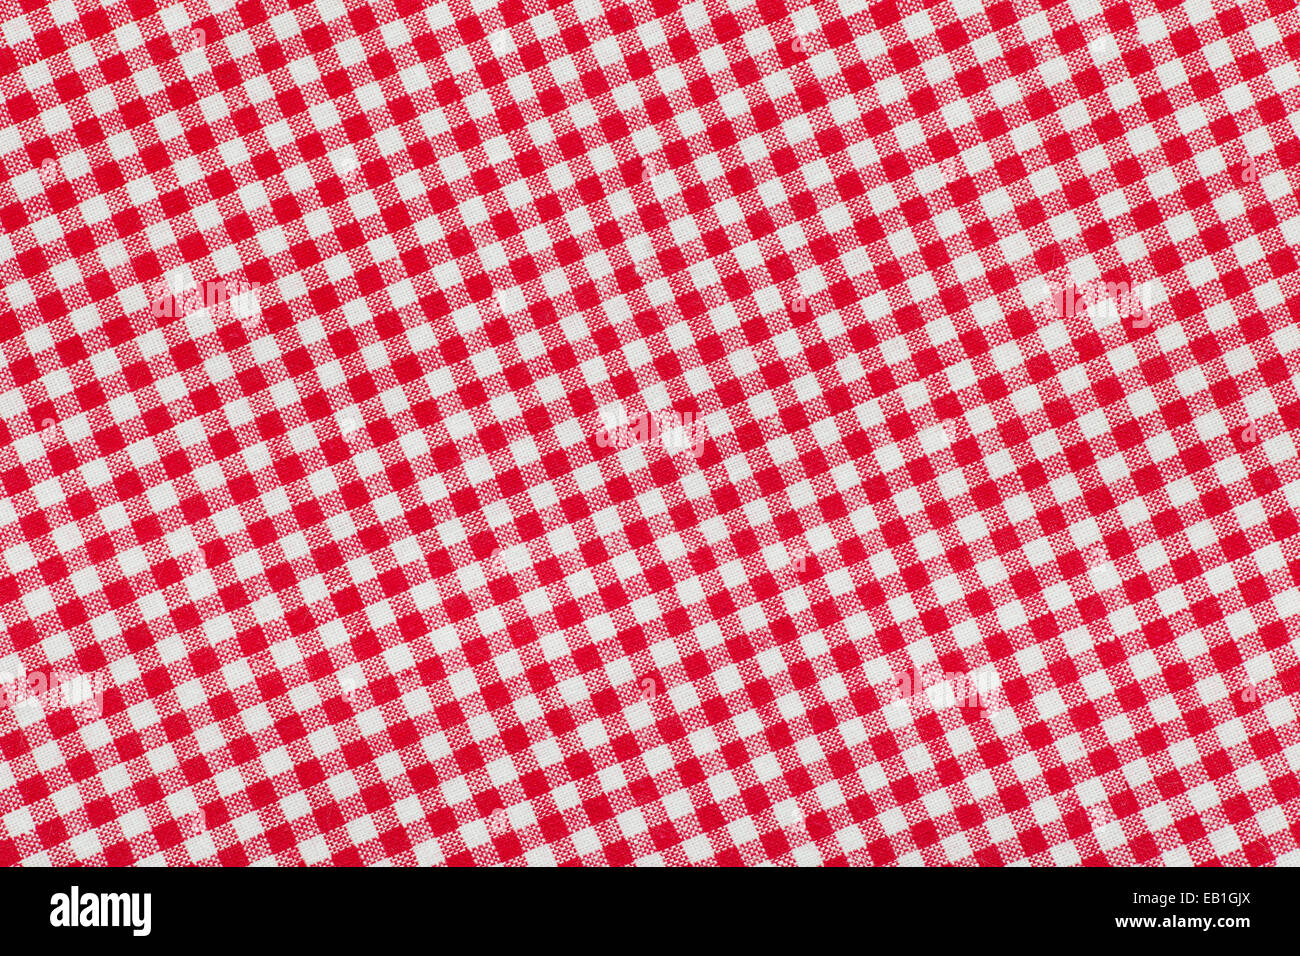 Red And White Checkered Picnic Tablecloth Background